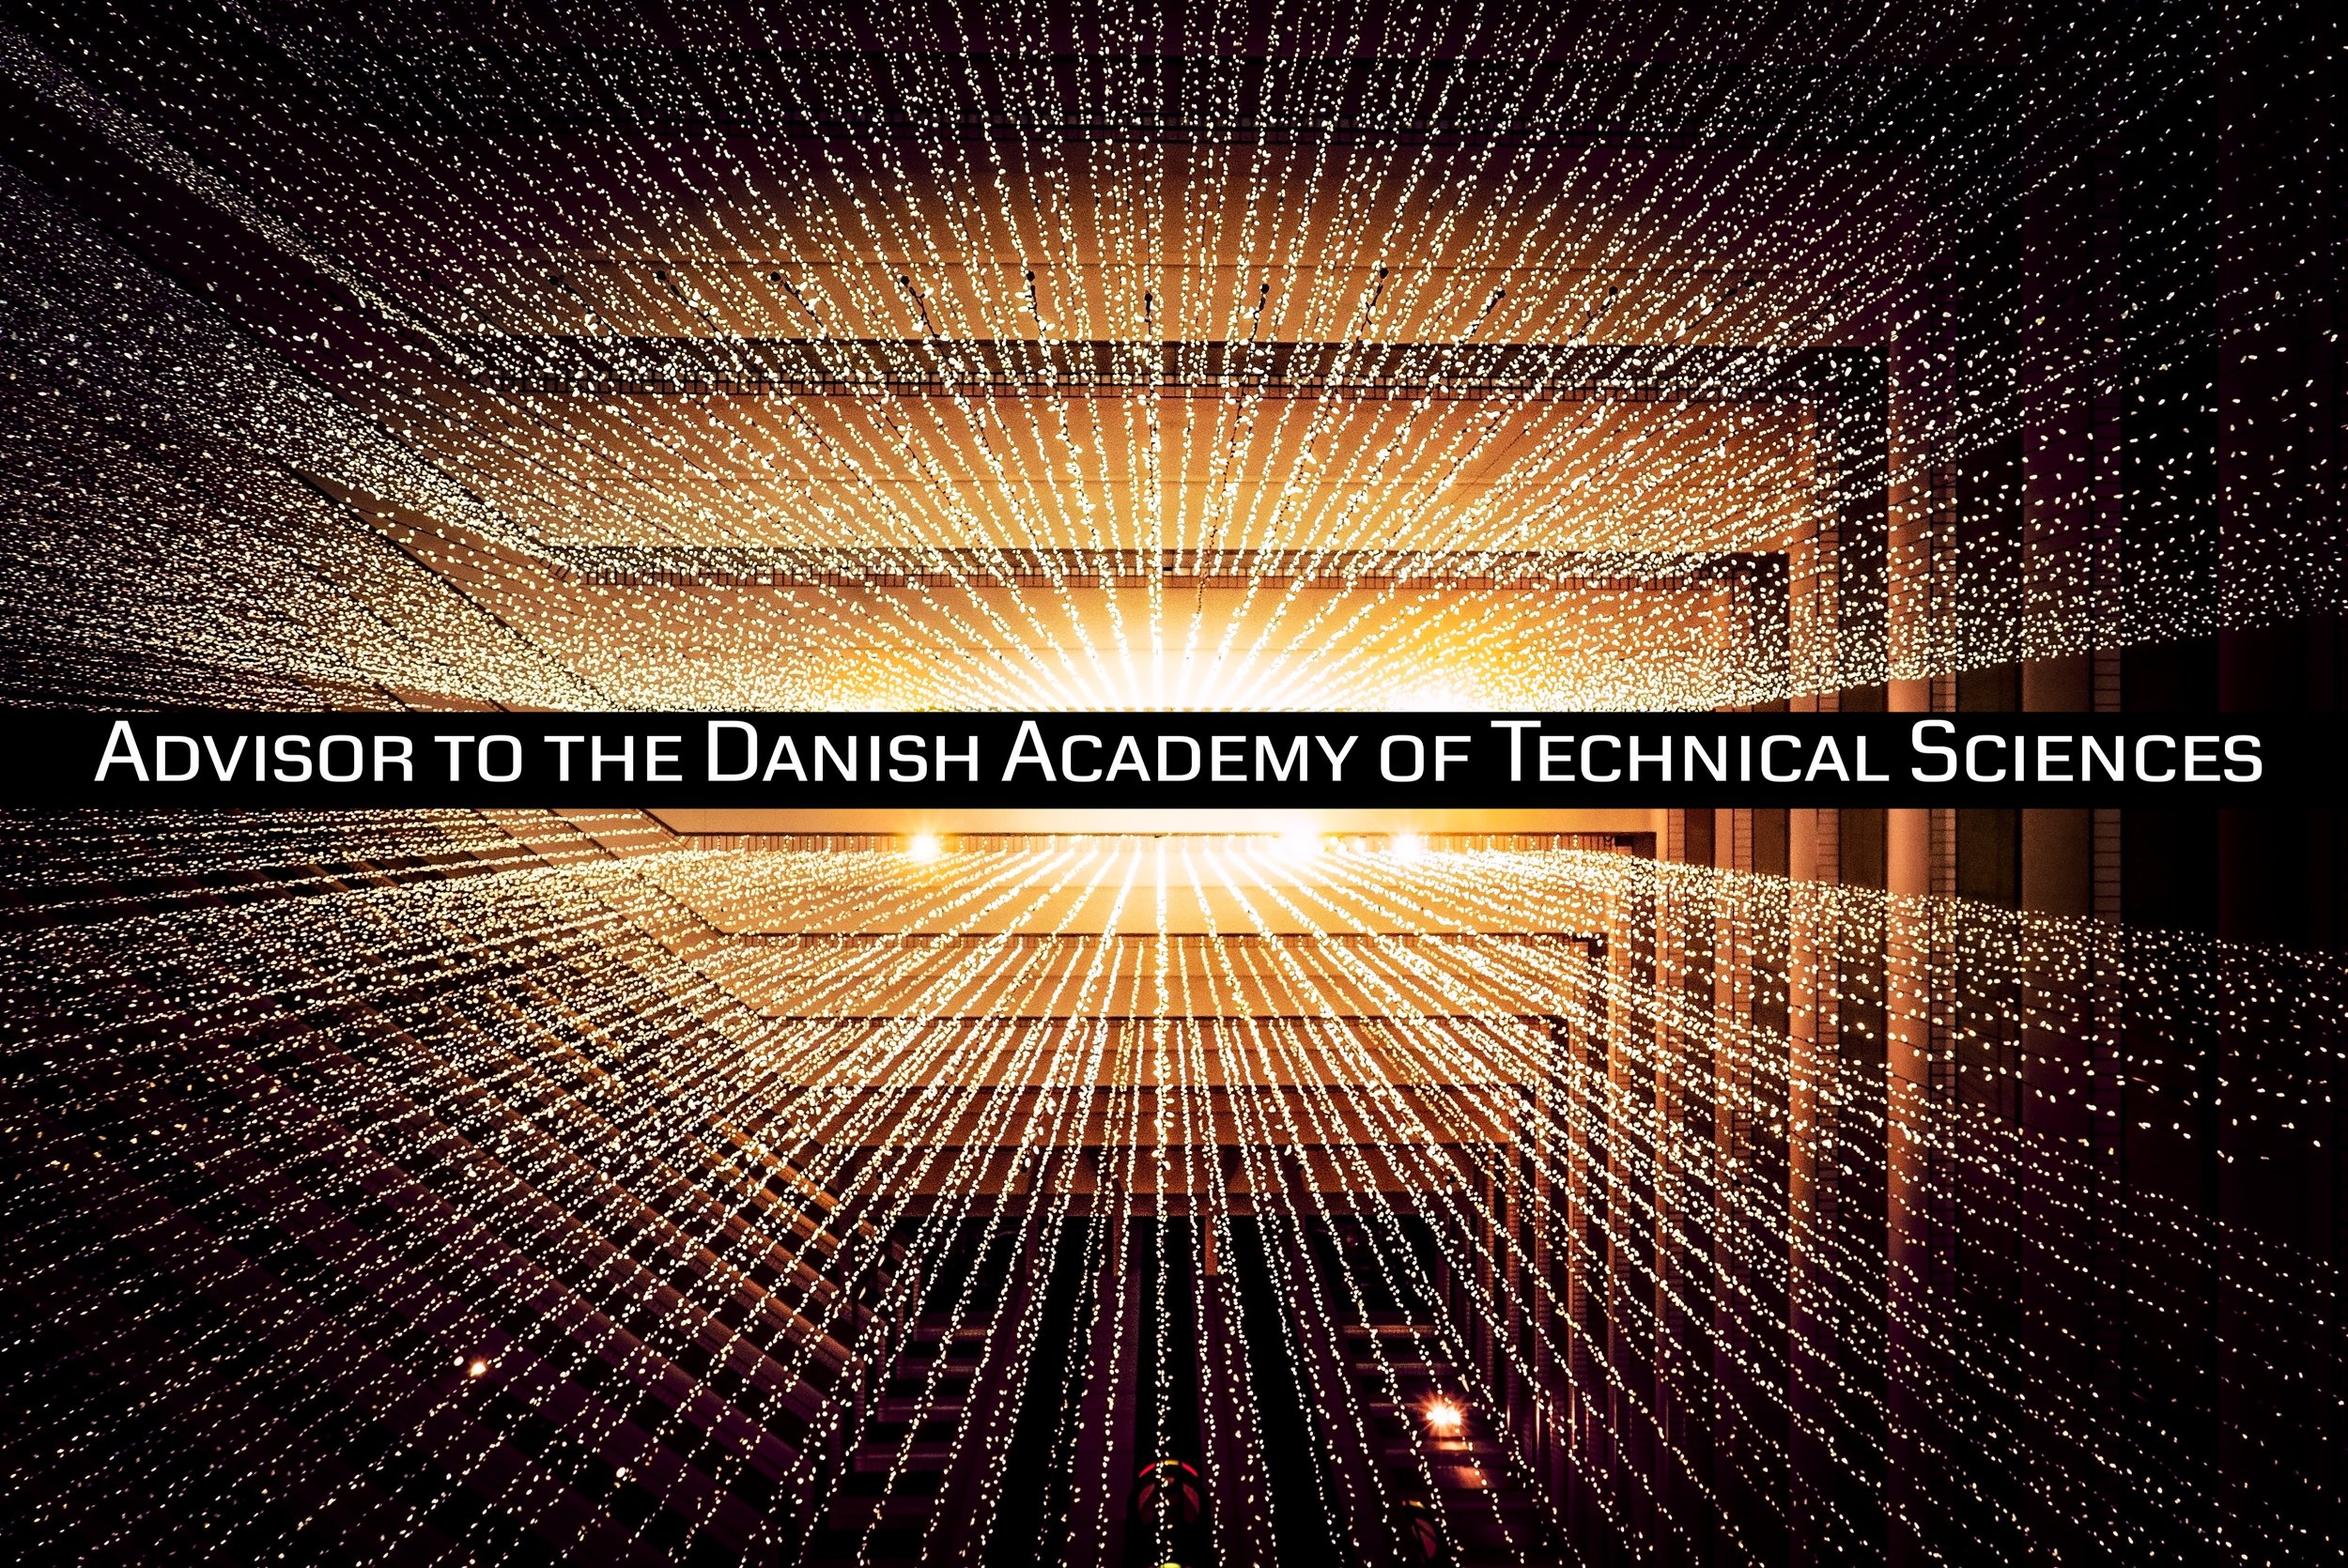 Advisor to the Danish Academy of technical Sciences